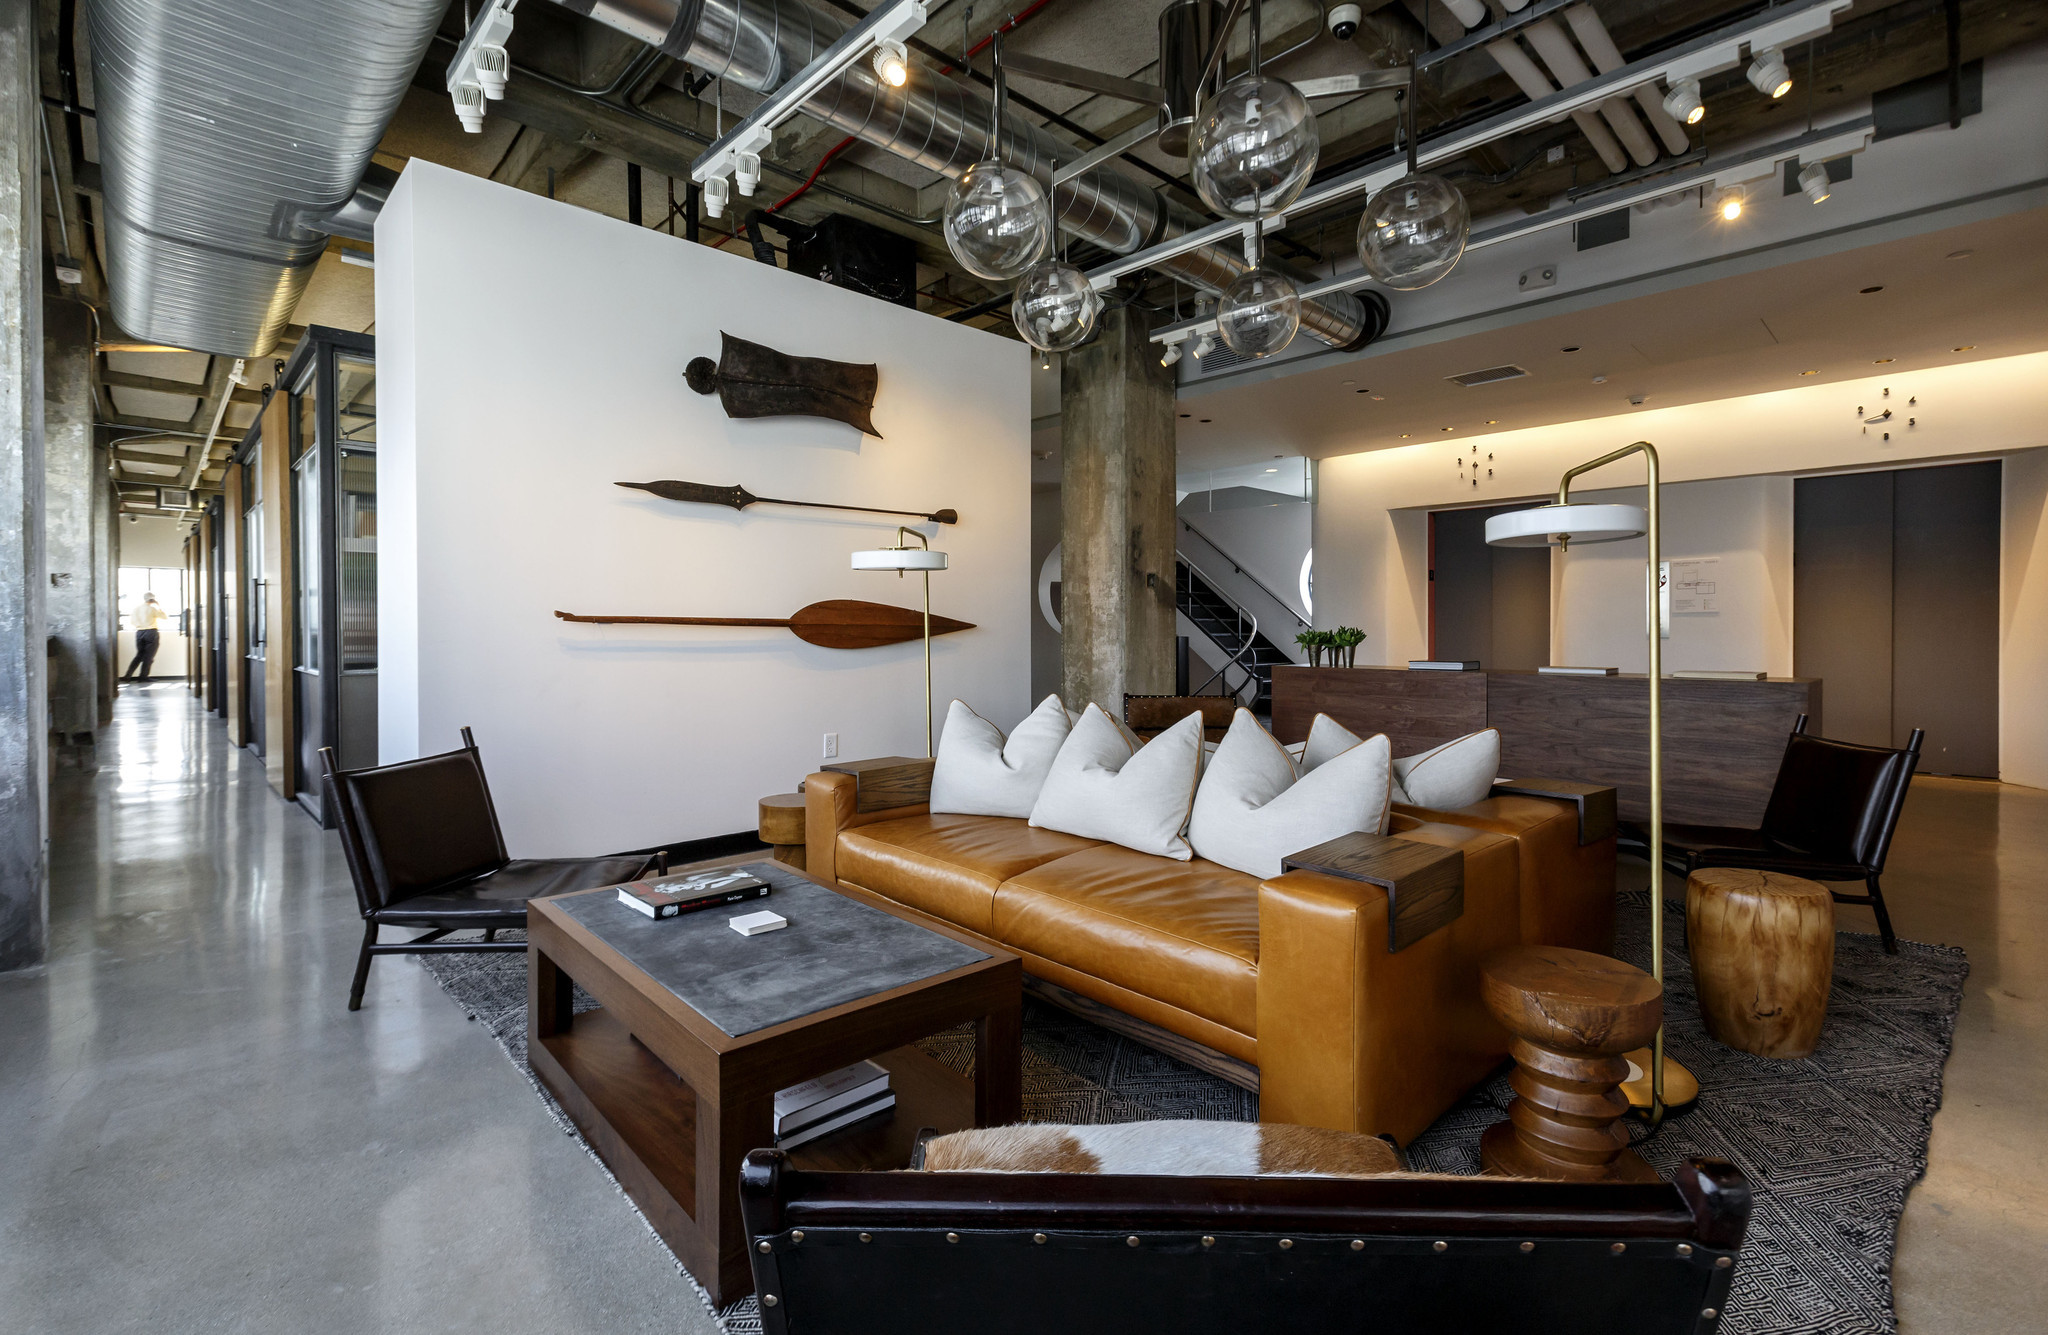 See How This 1930s Building In Hollywood Is Transformed Into The Workplace Of Future